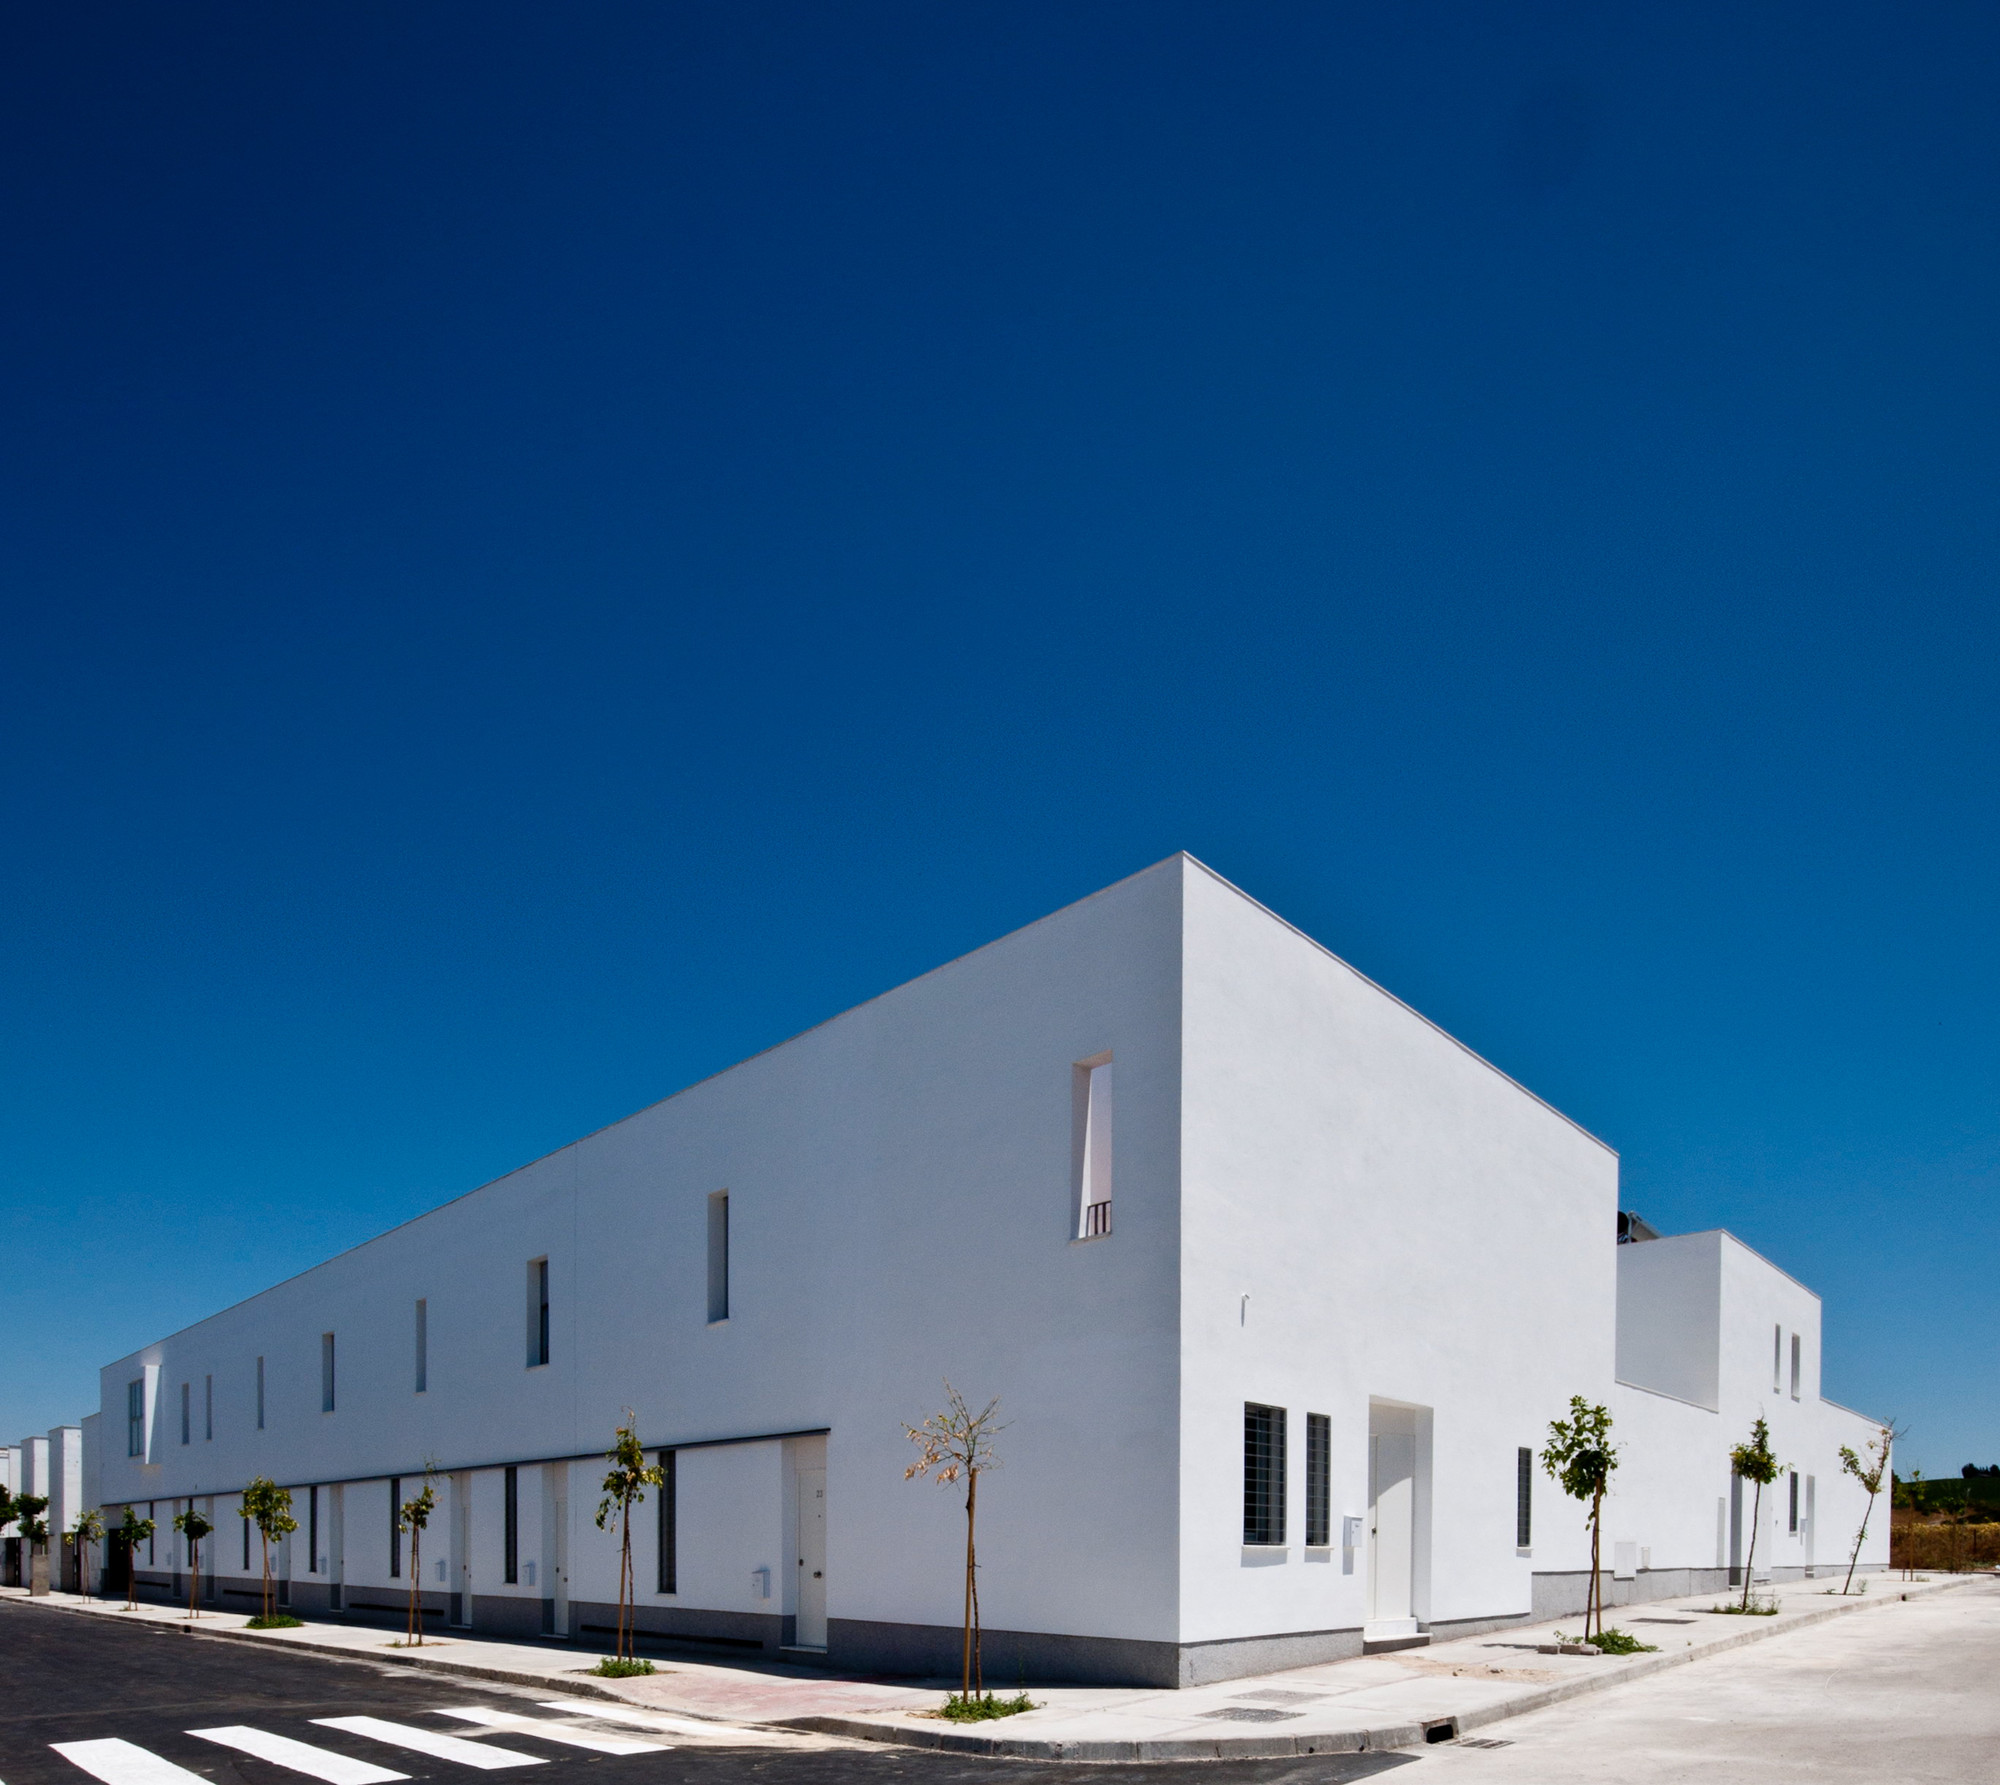 39 Housing Program / José Soto García, © Imagina2